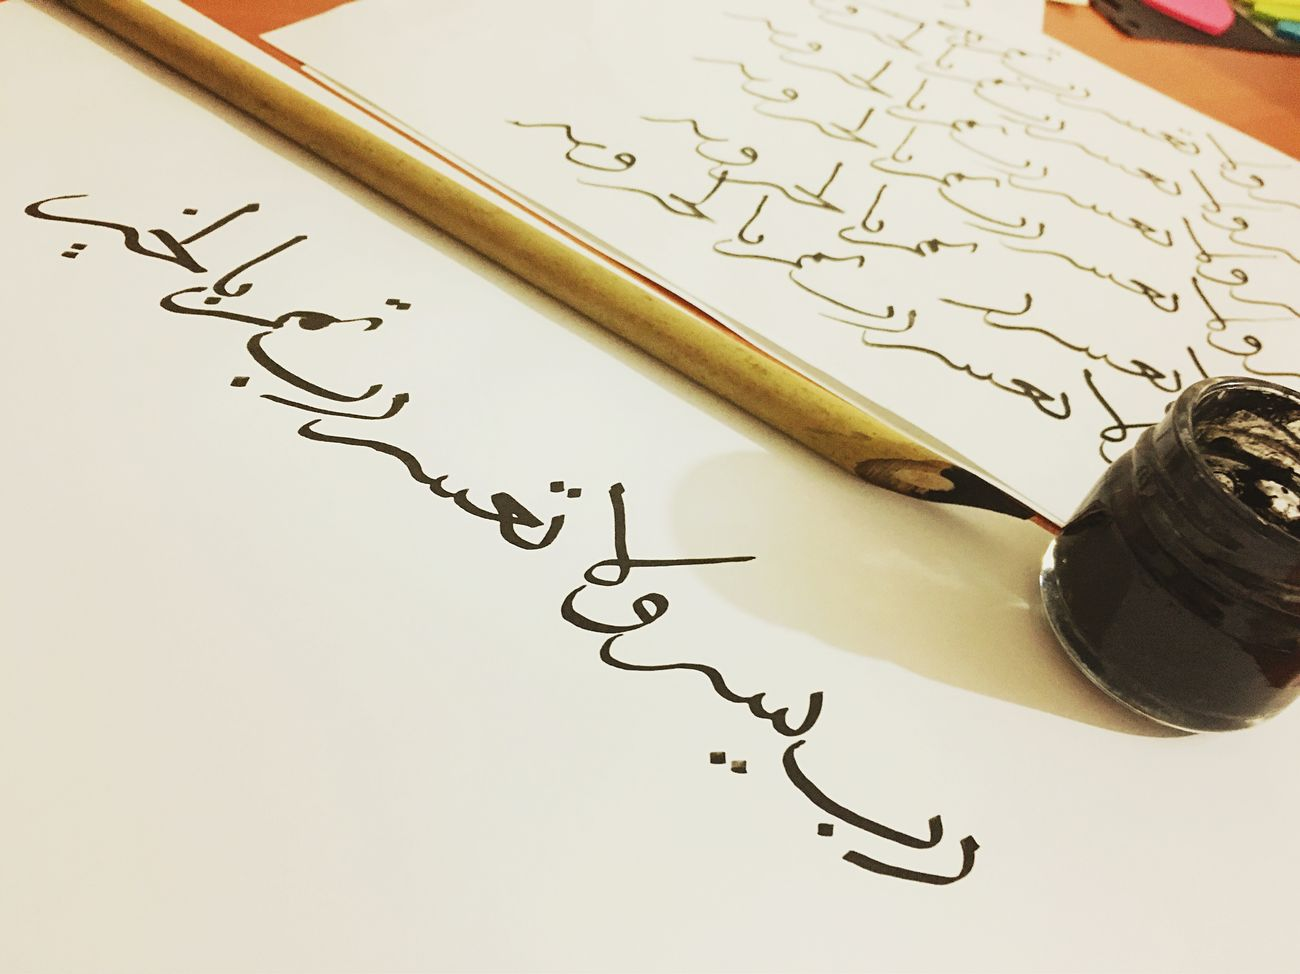 Arabic Arabic Style Arabic Architecture Arabic Art Arabic Culture High Angle View Education No People Paper Close-up Indoors  Fountain Pen Day Caligraphy ربّ يسّر ولا تعسّر ربّ تمّم بالخير